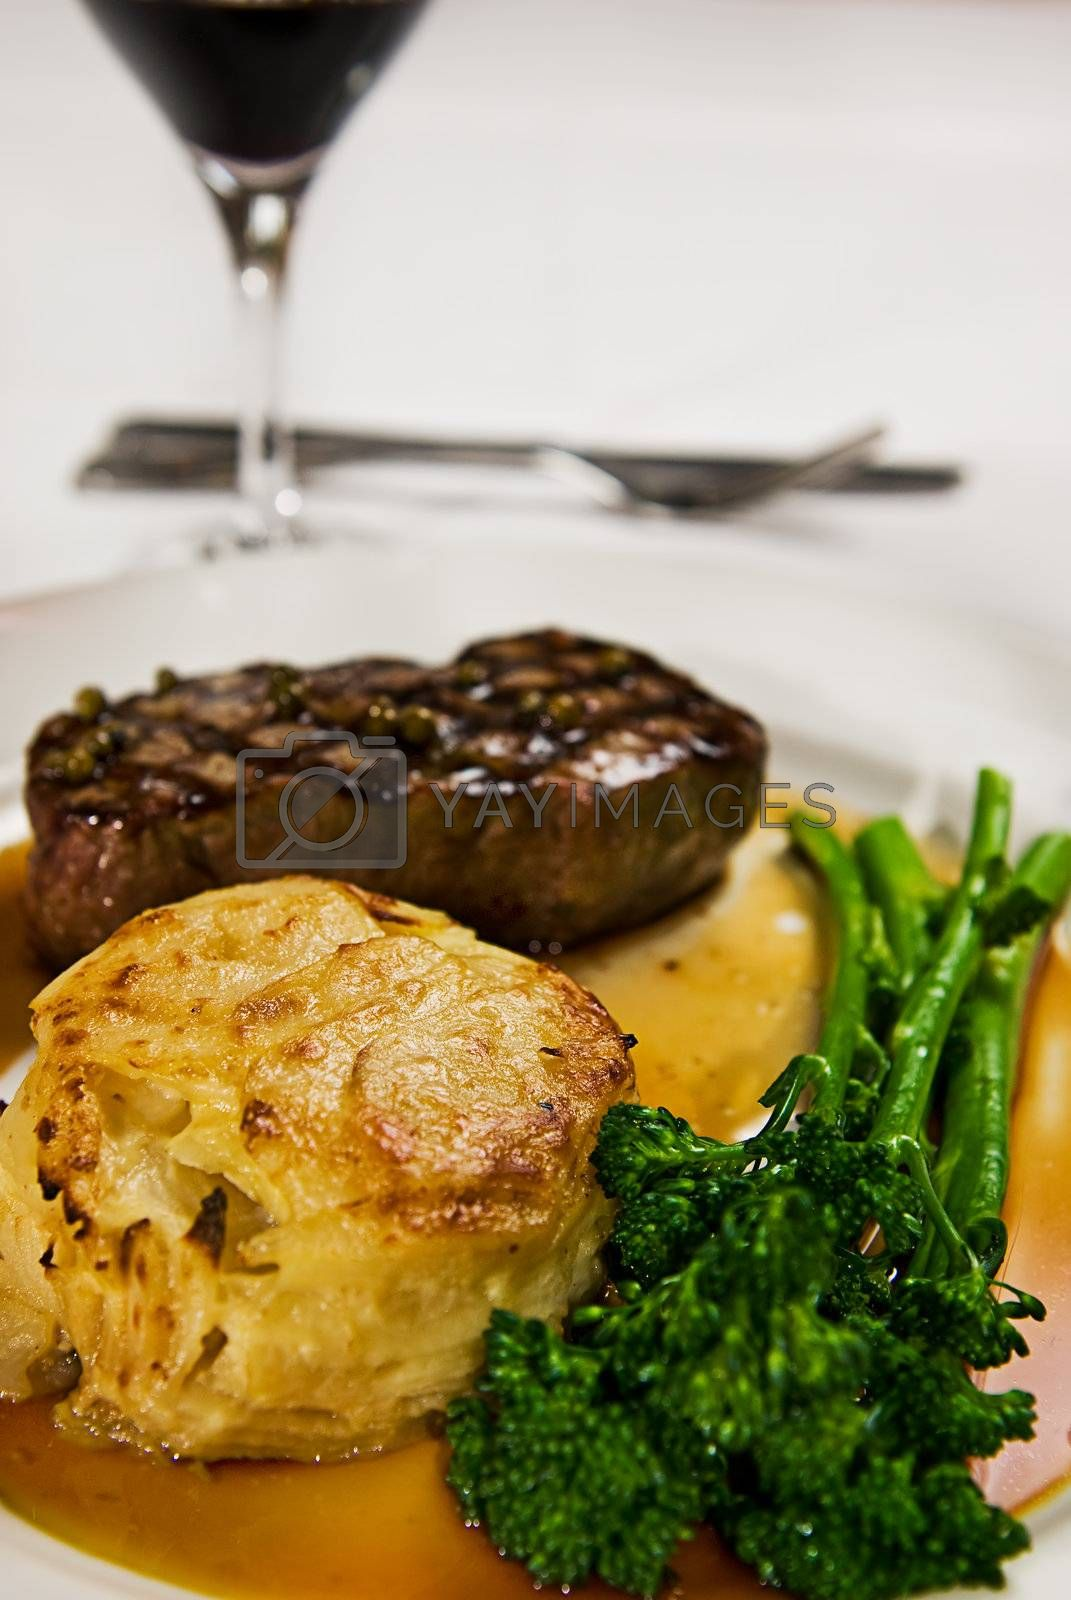 A perfectly grilled steak served with broccolini and a potato cake with gravy and red wine.